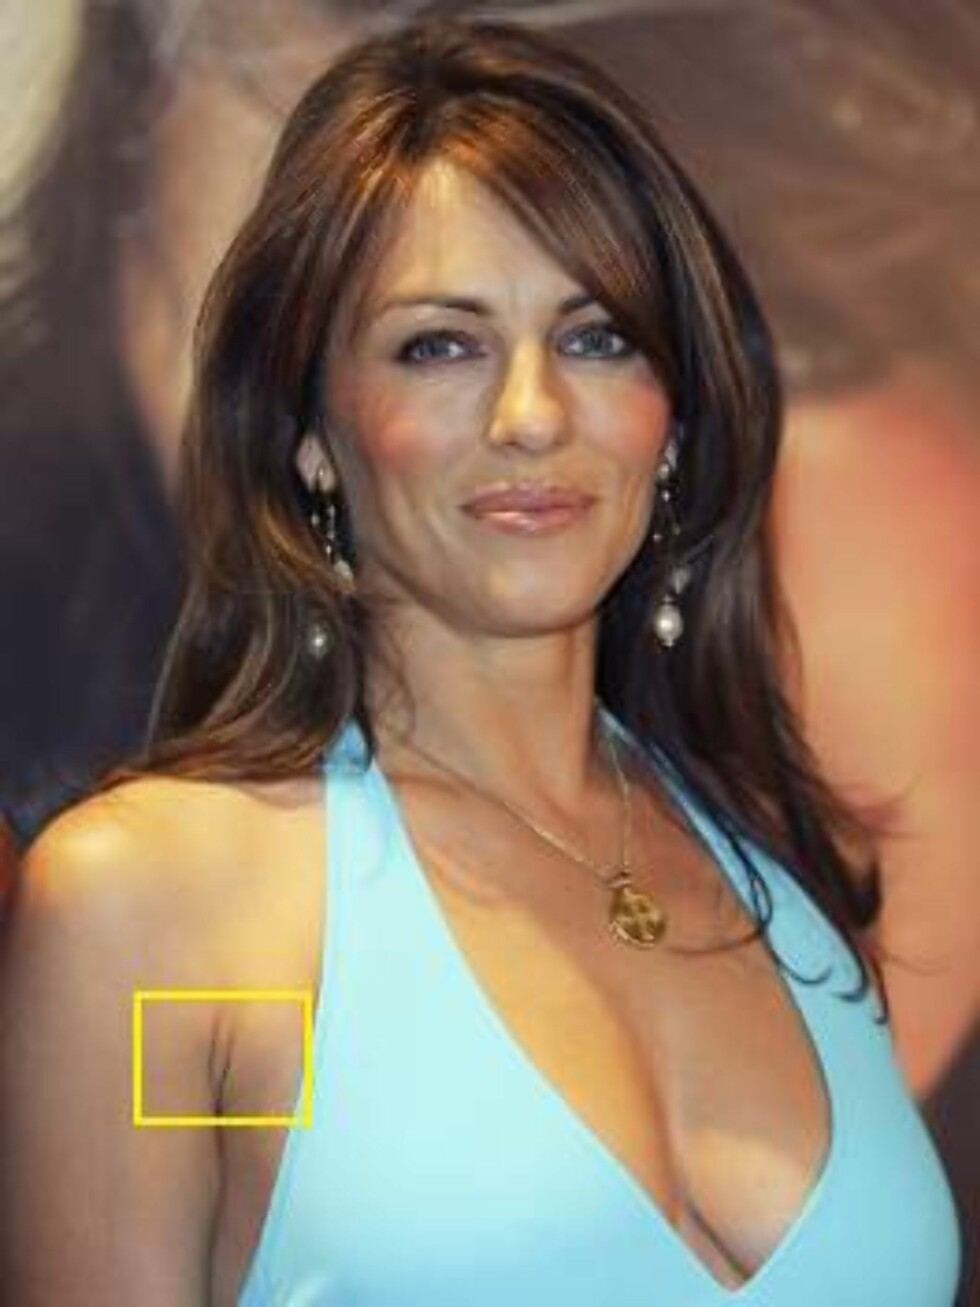 MELBOURNE, AUSTRALIA - AUGUST 31: Elizabeth Hurley attends the launch of the Elizabeth Hurley Beach Collection on at David Jones August 31, 2005 in Melbourne, Australia.  (Photo by David Teuma/Getty Images) / ALL OVER PRESS53455313DT010_Elizabeth_Hur *** Foto: All Over Press